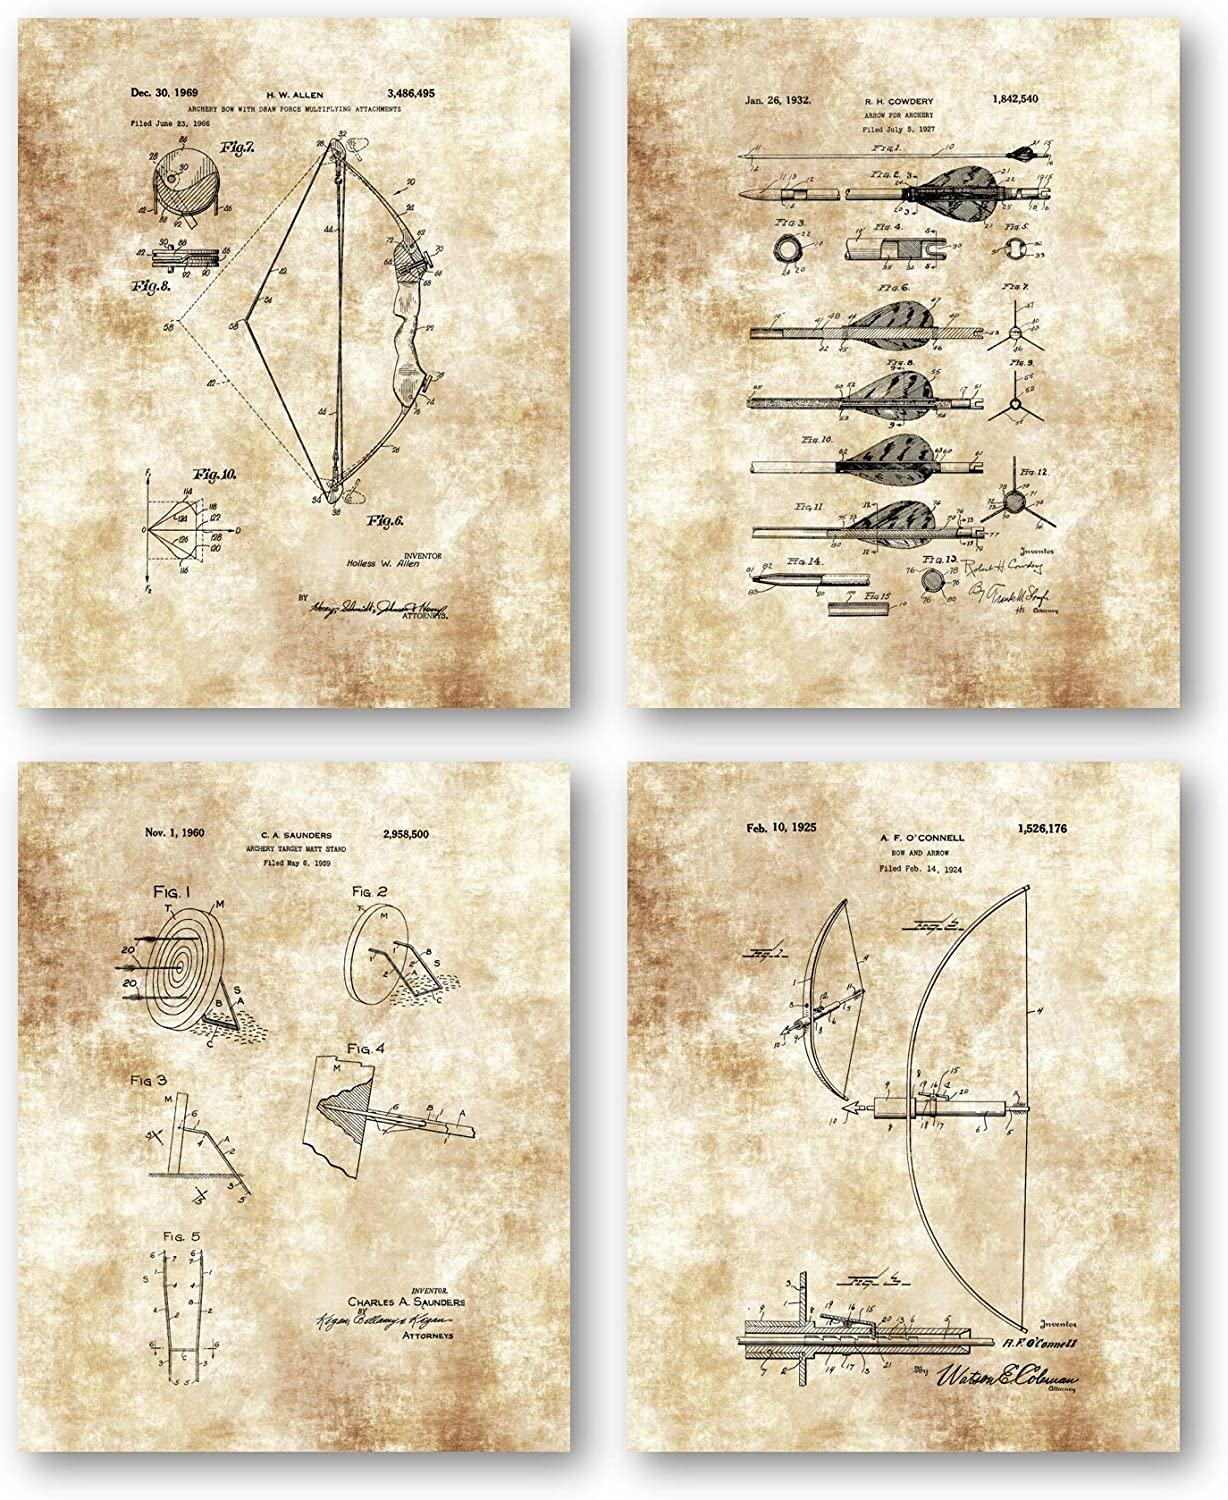 Ramini Brands Original Archery Patent Art Drawings- Set of 4 8 x 10 Unframed Prints - Great Gift for Archers and Bow Hunters - Stunning Decor for Mancaves, Cabins and Lodges